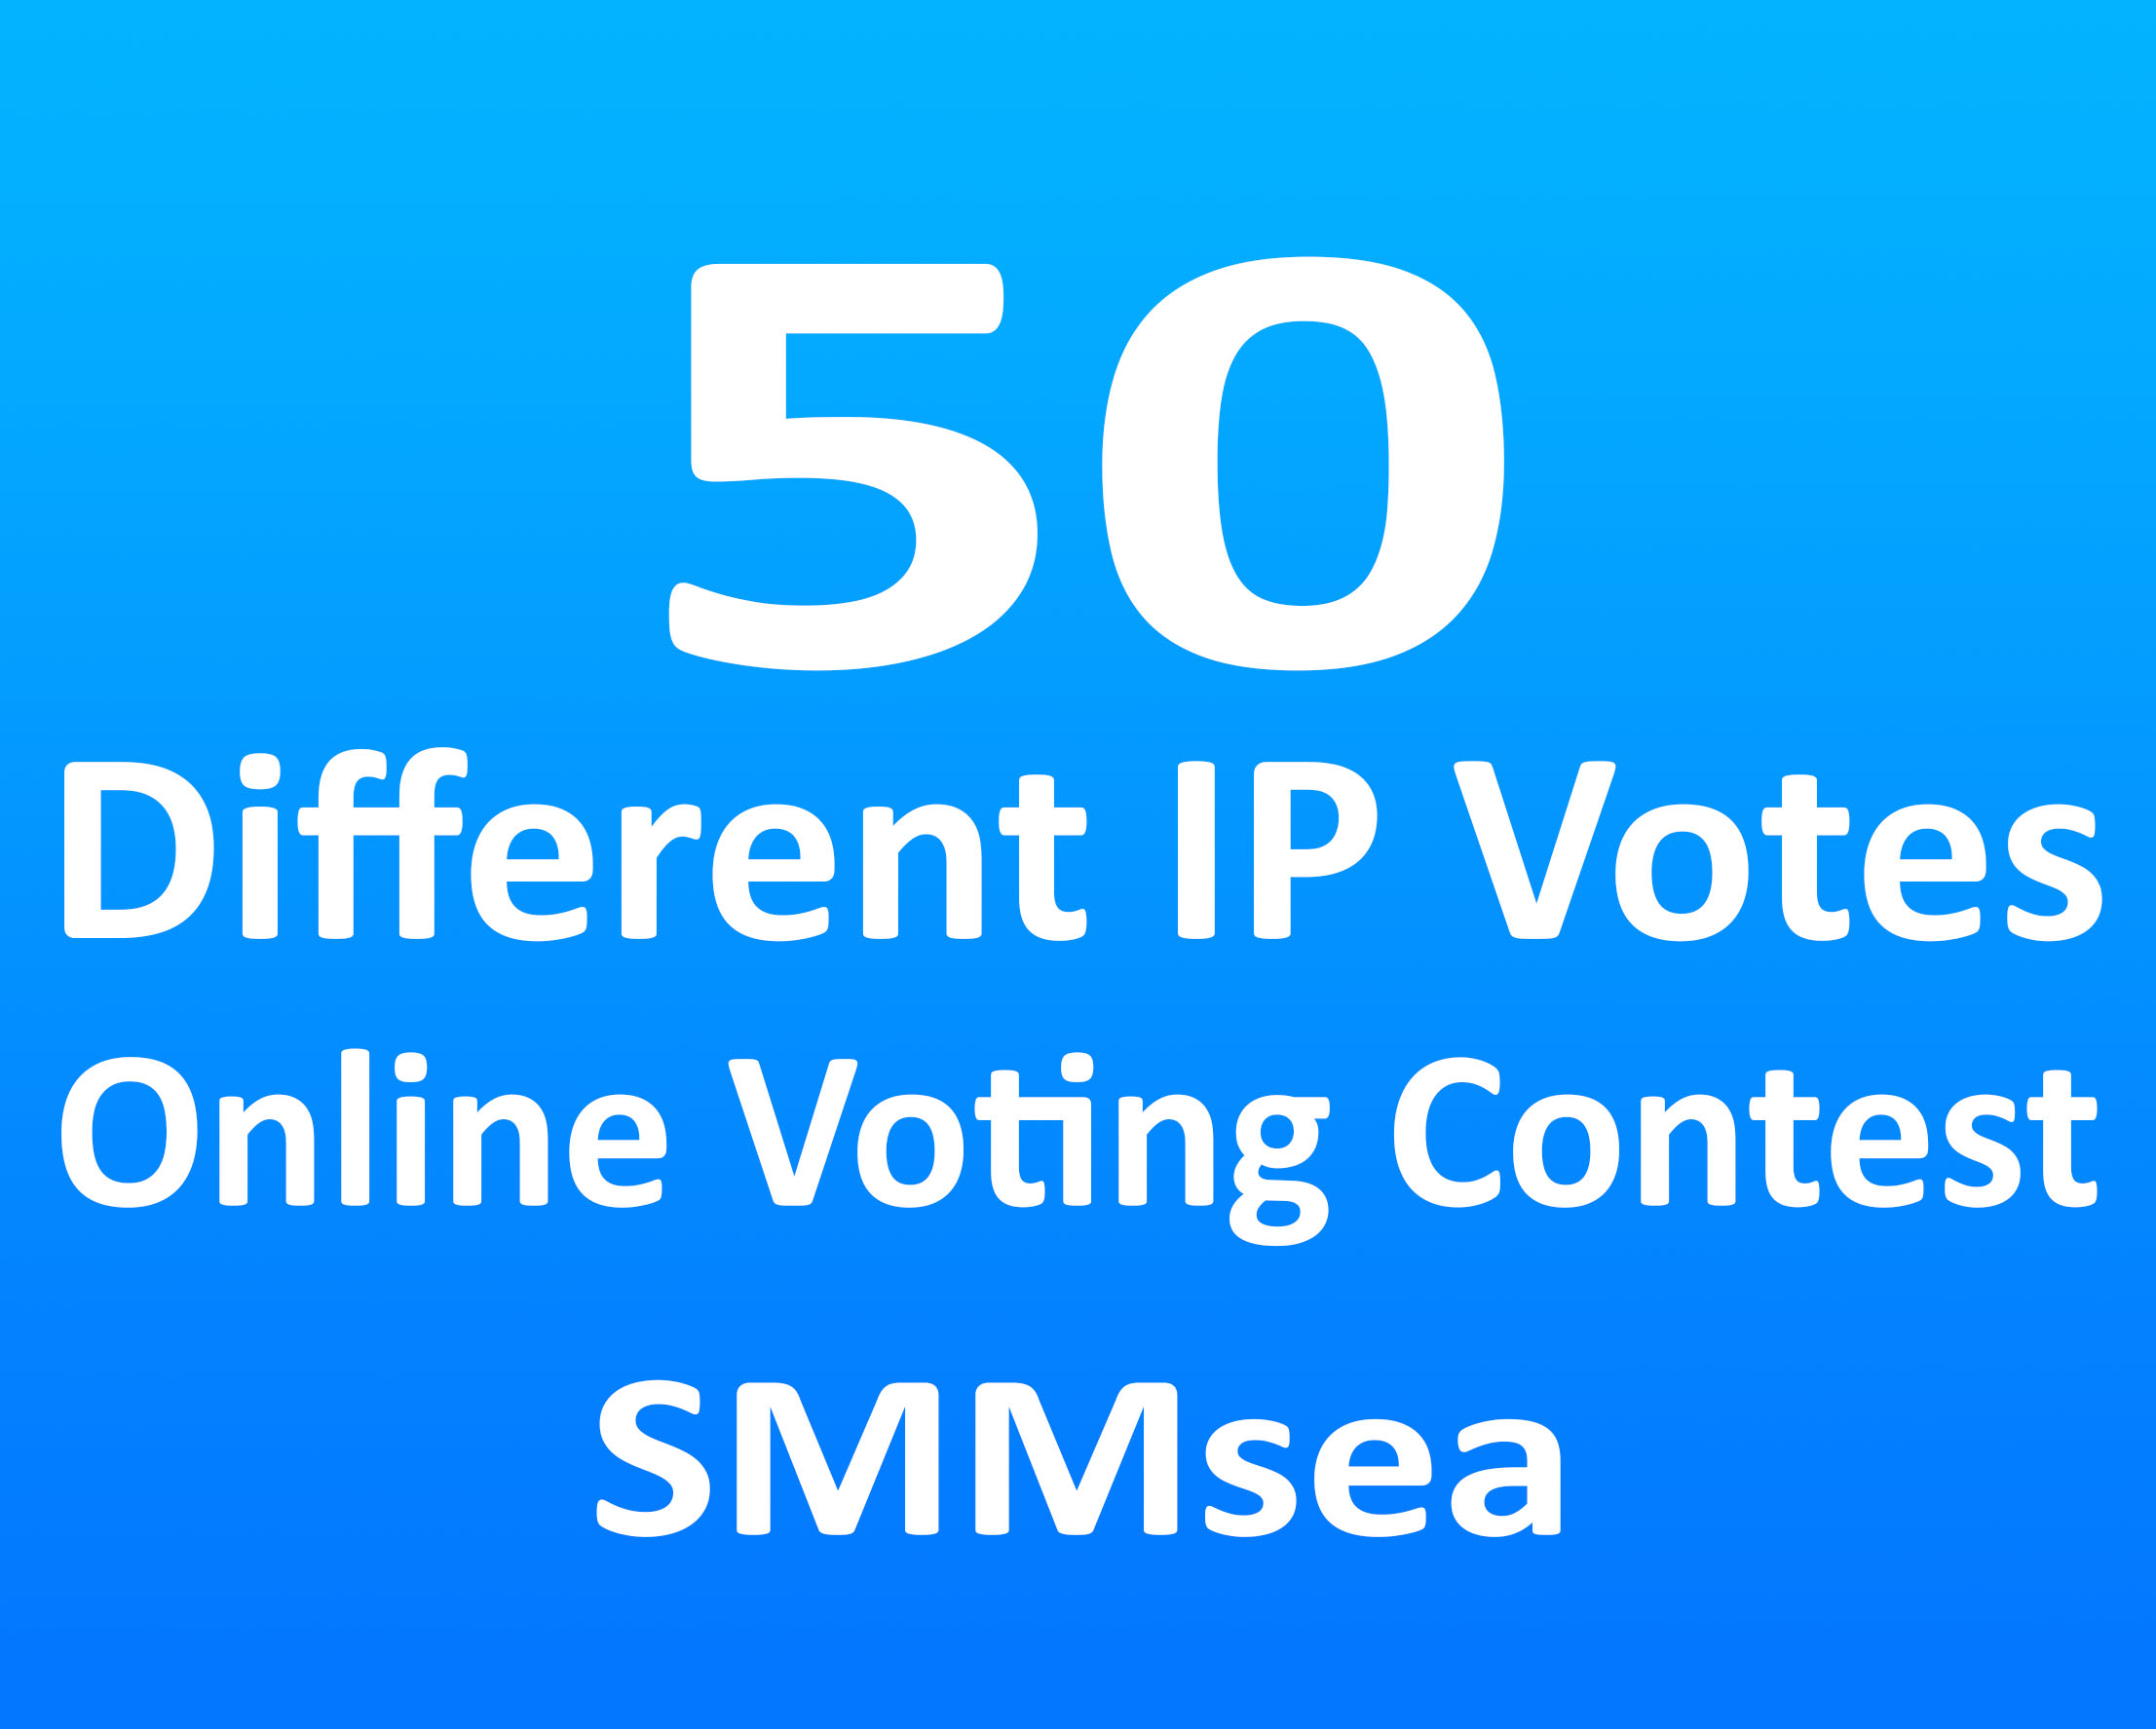 Give 50 Different IP Votes For Any Online Voting Contest